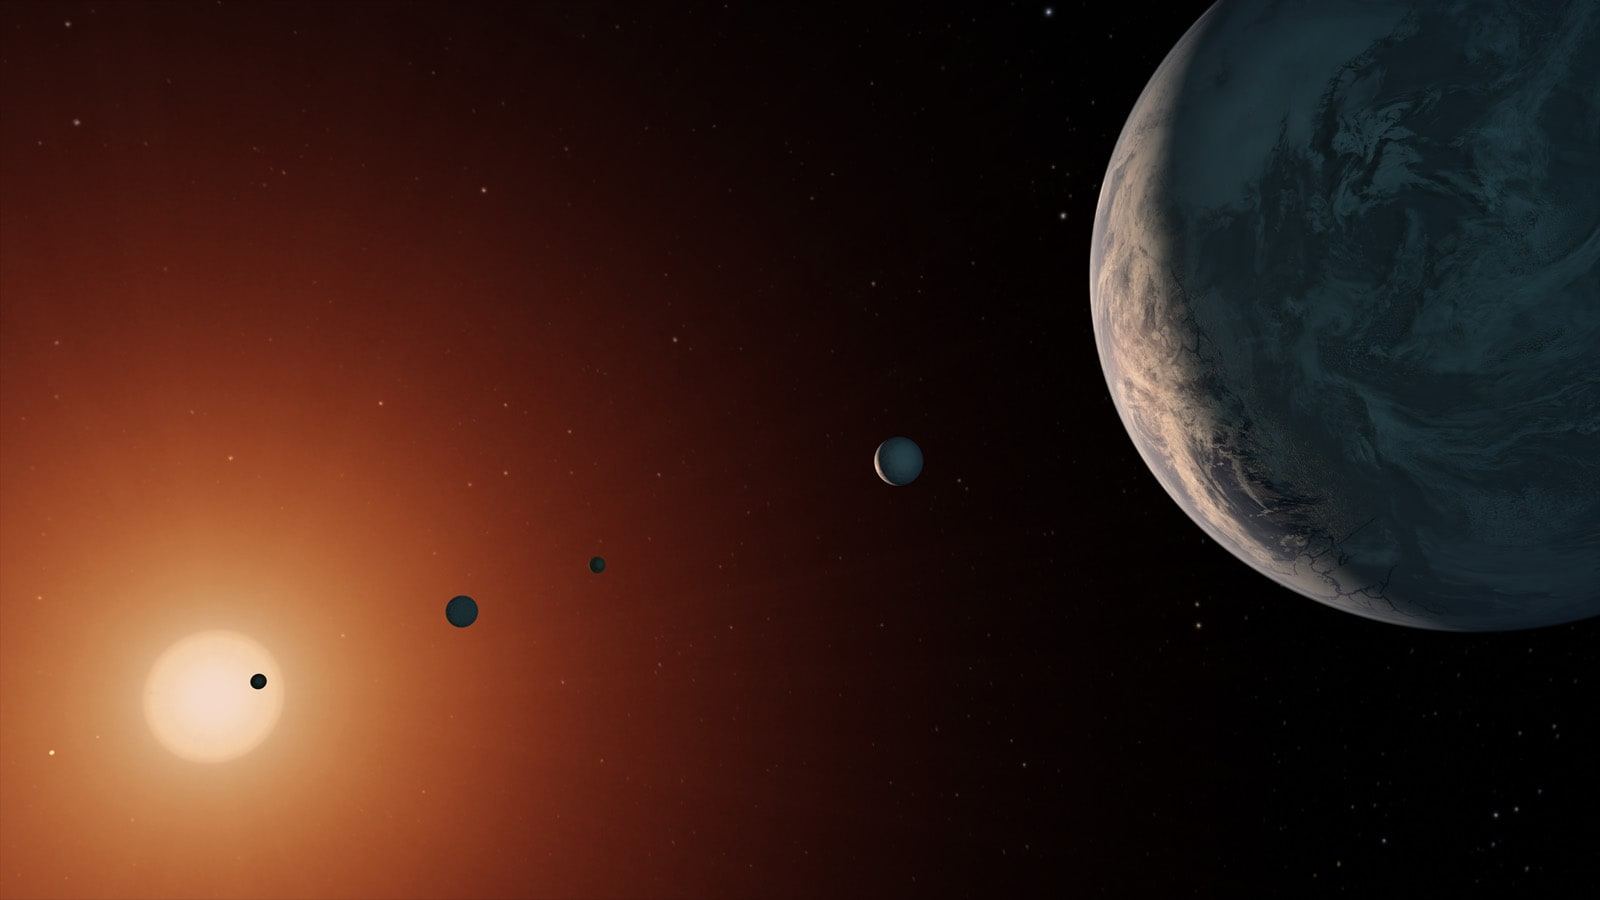 Another concept of the TRAPPIST-1 system. Image: NASA.